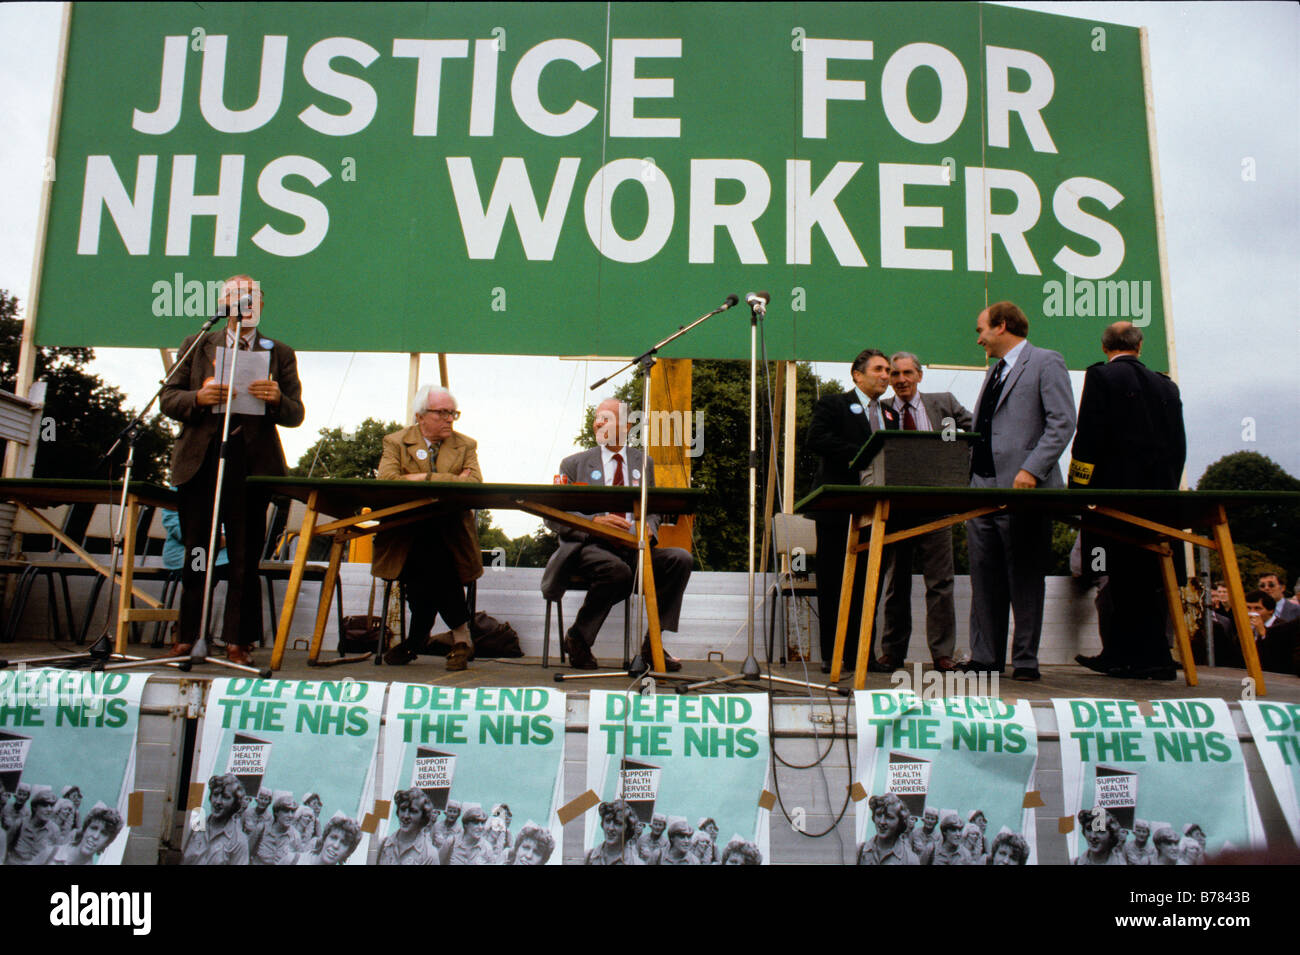 NHS WORKERS DAY OF ACTION LONDON MARCH 22 9 82 The Conservative government cut NHS funding leading to an organised - Stock Image